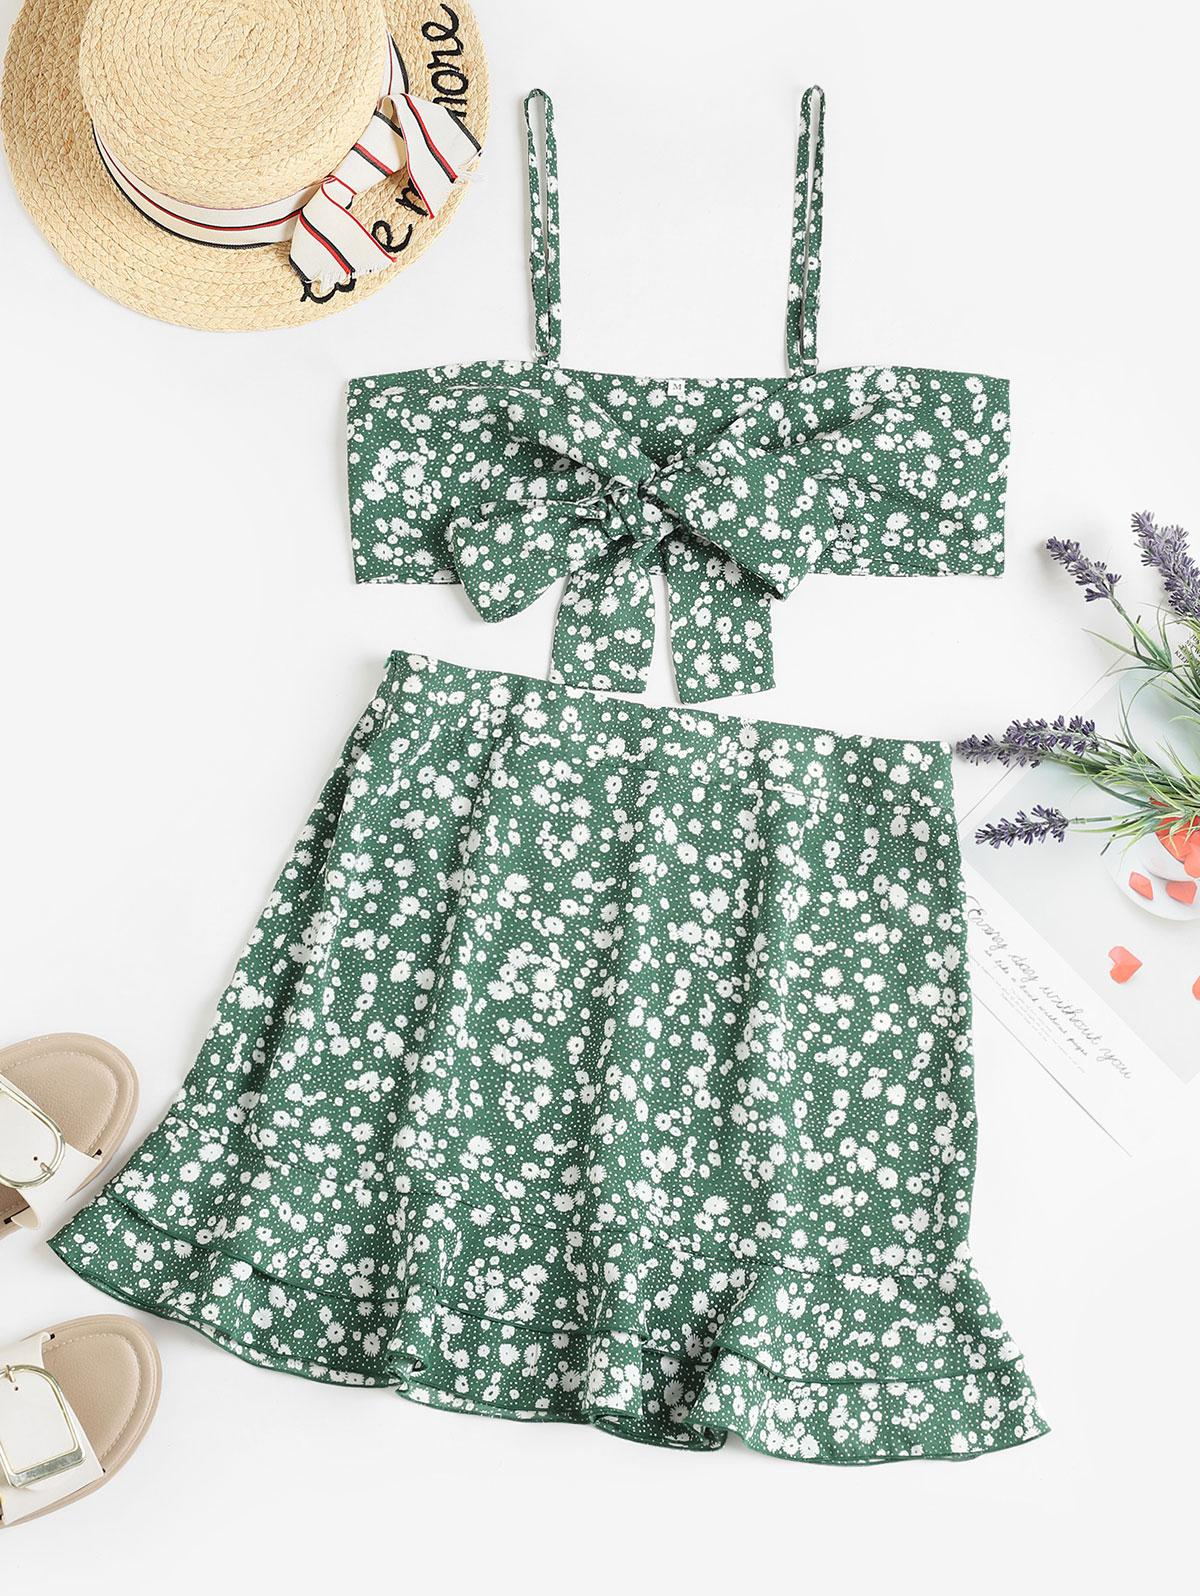 ZAFUL Ditsy Floral Tie Front Layered Ruffles Two Piece Dress фото